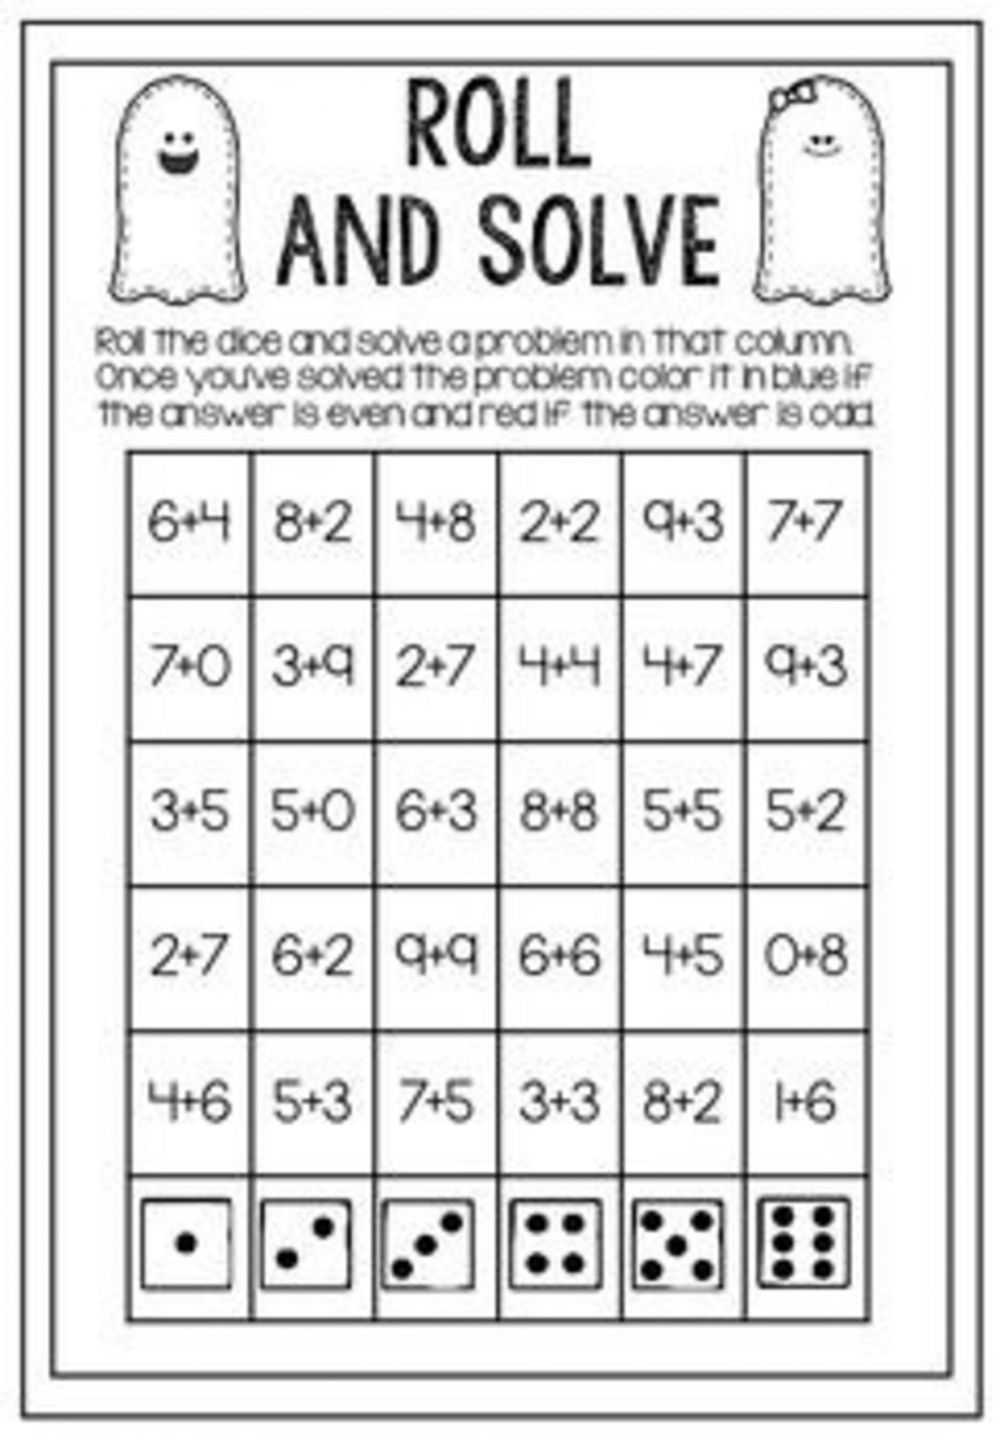 medium resolution of 5 Free Math Worksheets Second Grade 2 Addition Adding Missing Addend Sum  Under 10 - apocalomegaproductions.com